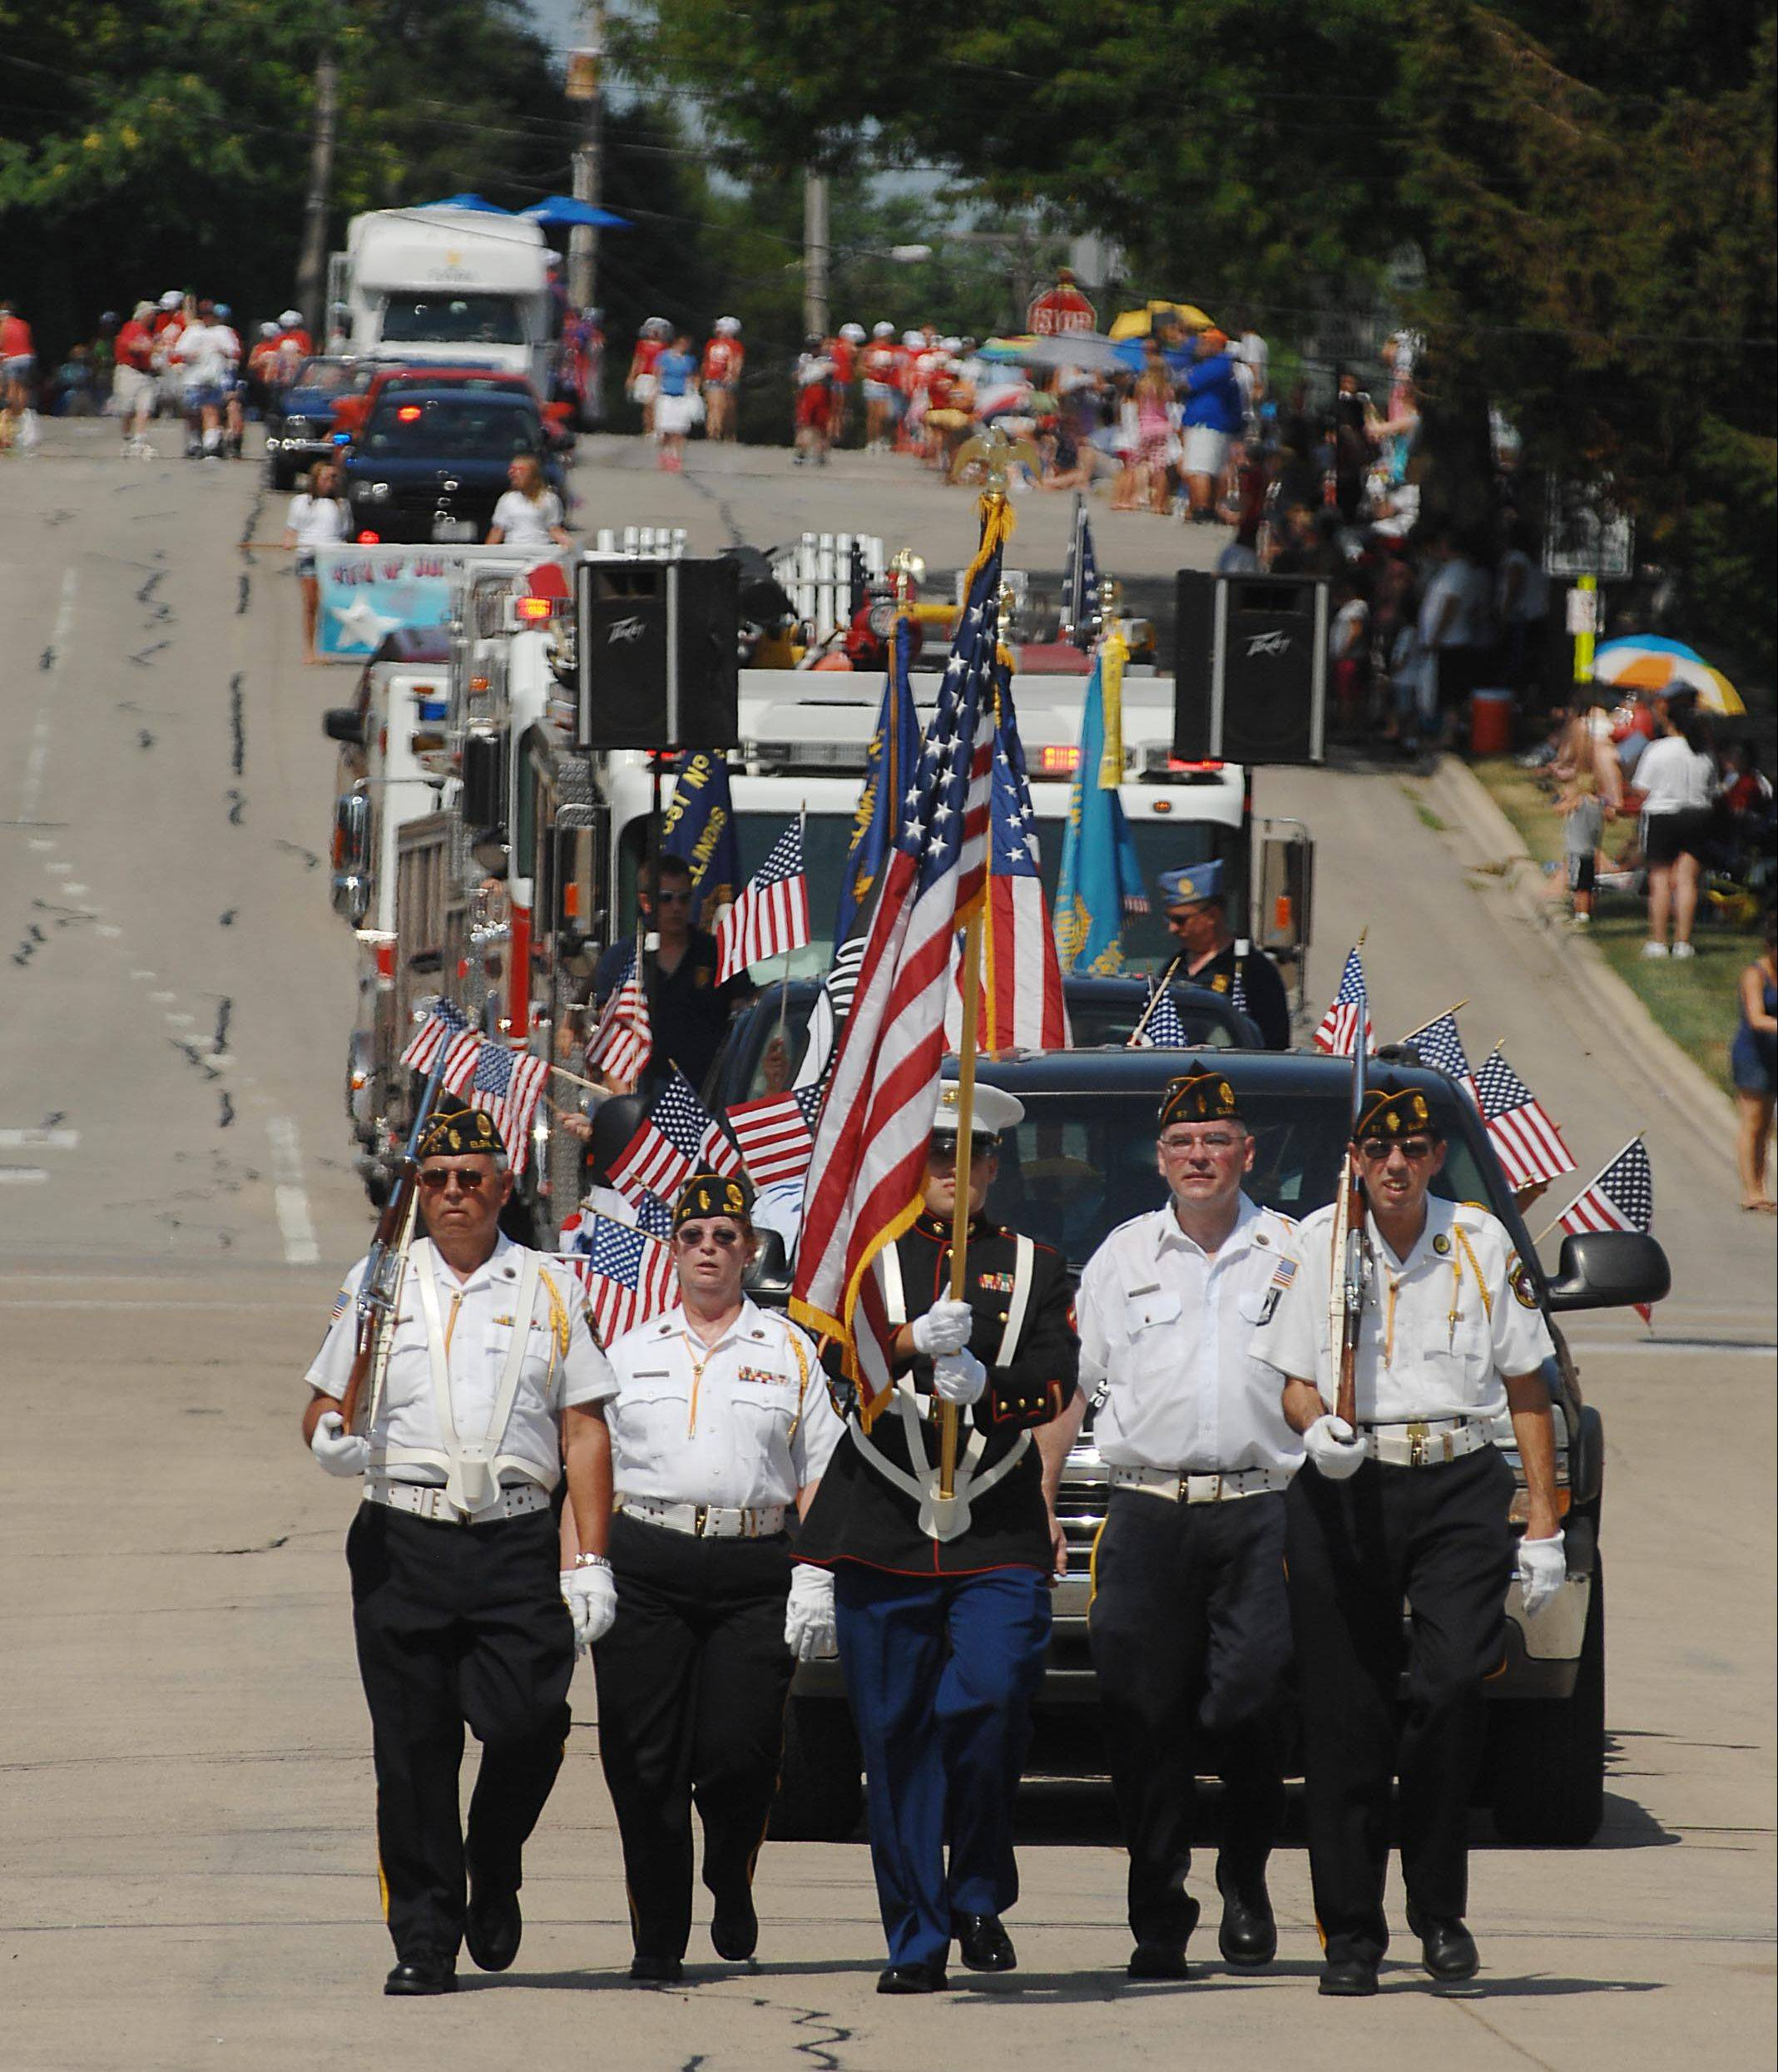 American Legion Post 57 carries the colors proudly in South Elgin's Fourth of July parade.